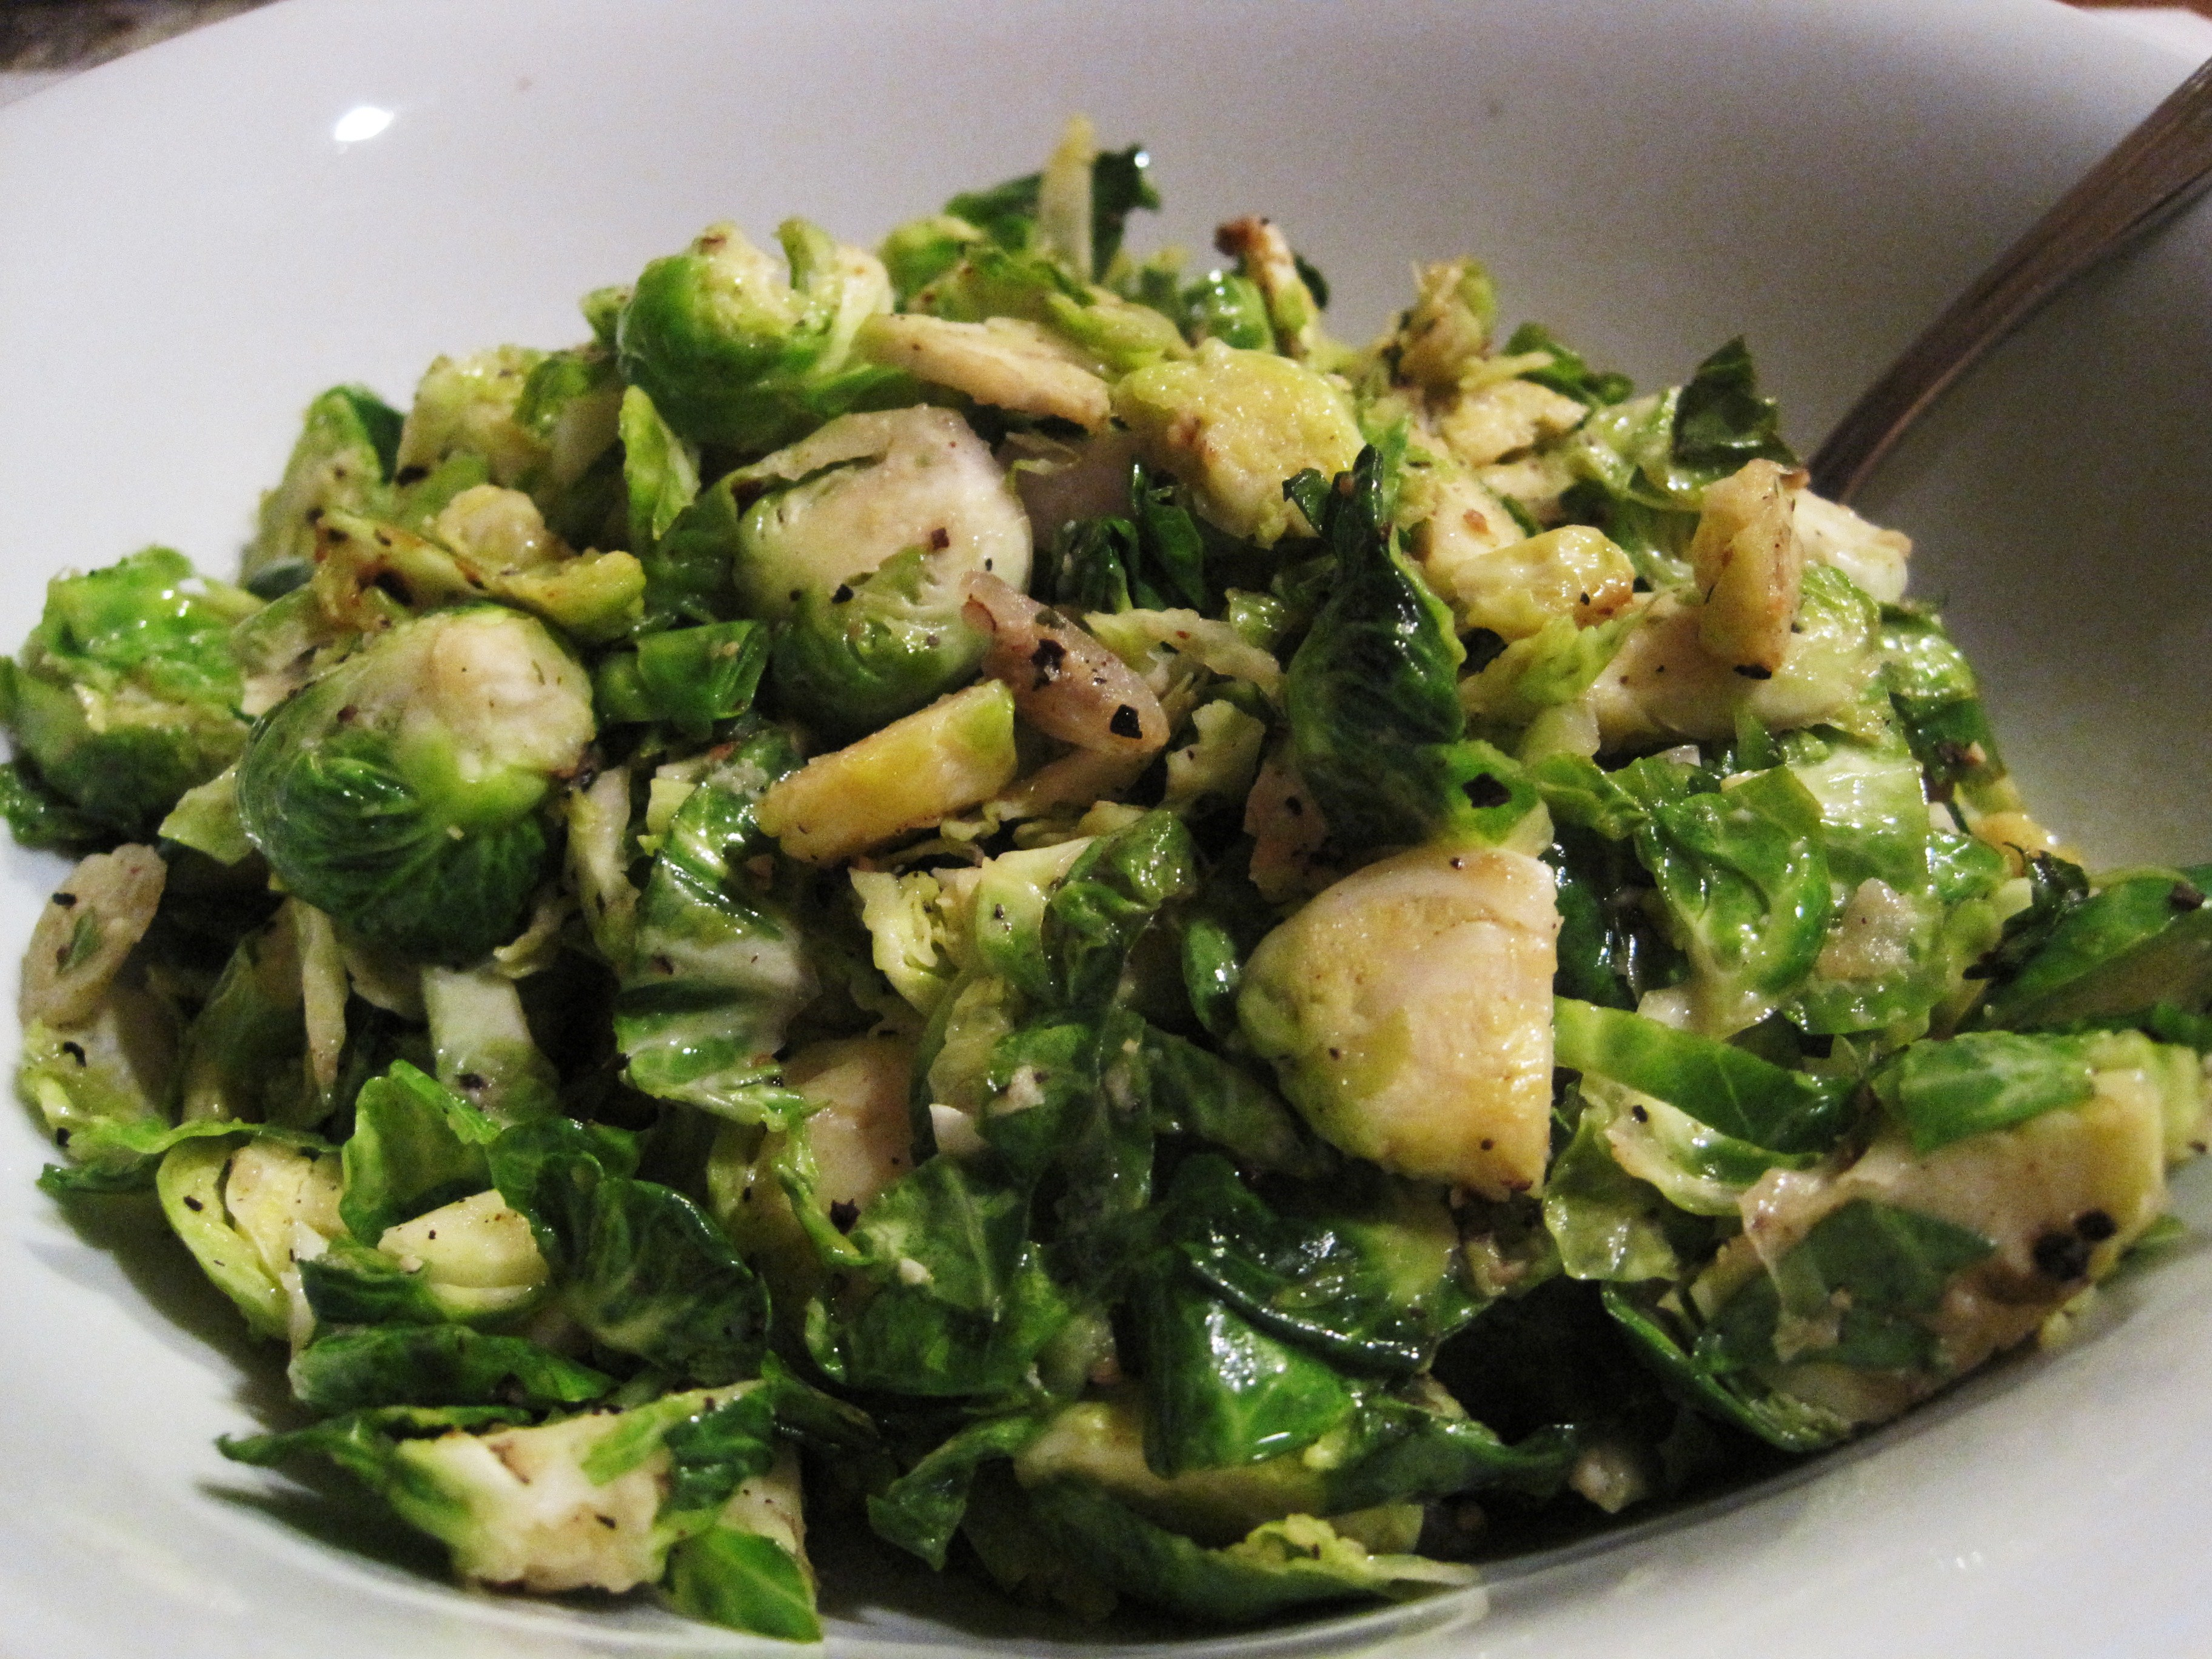 brussels sprouts with sauteed brussels sprouts with sauteed brussels ...